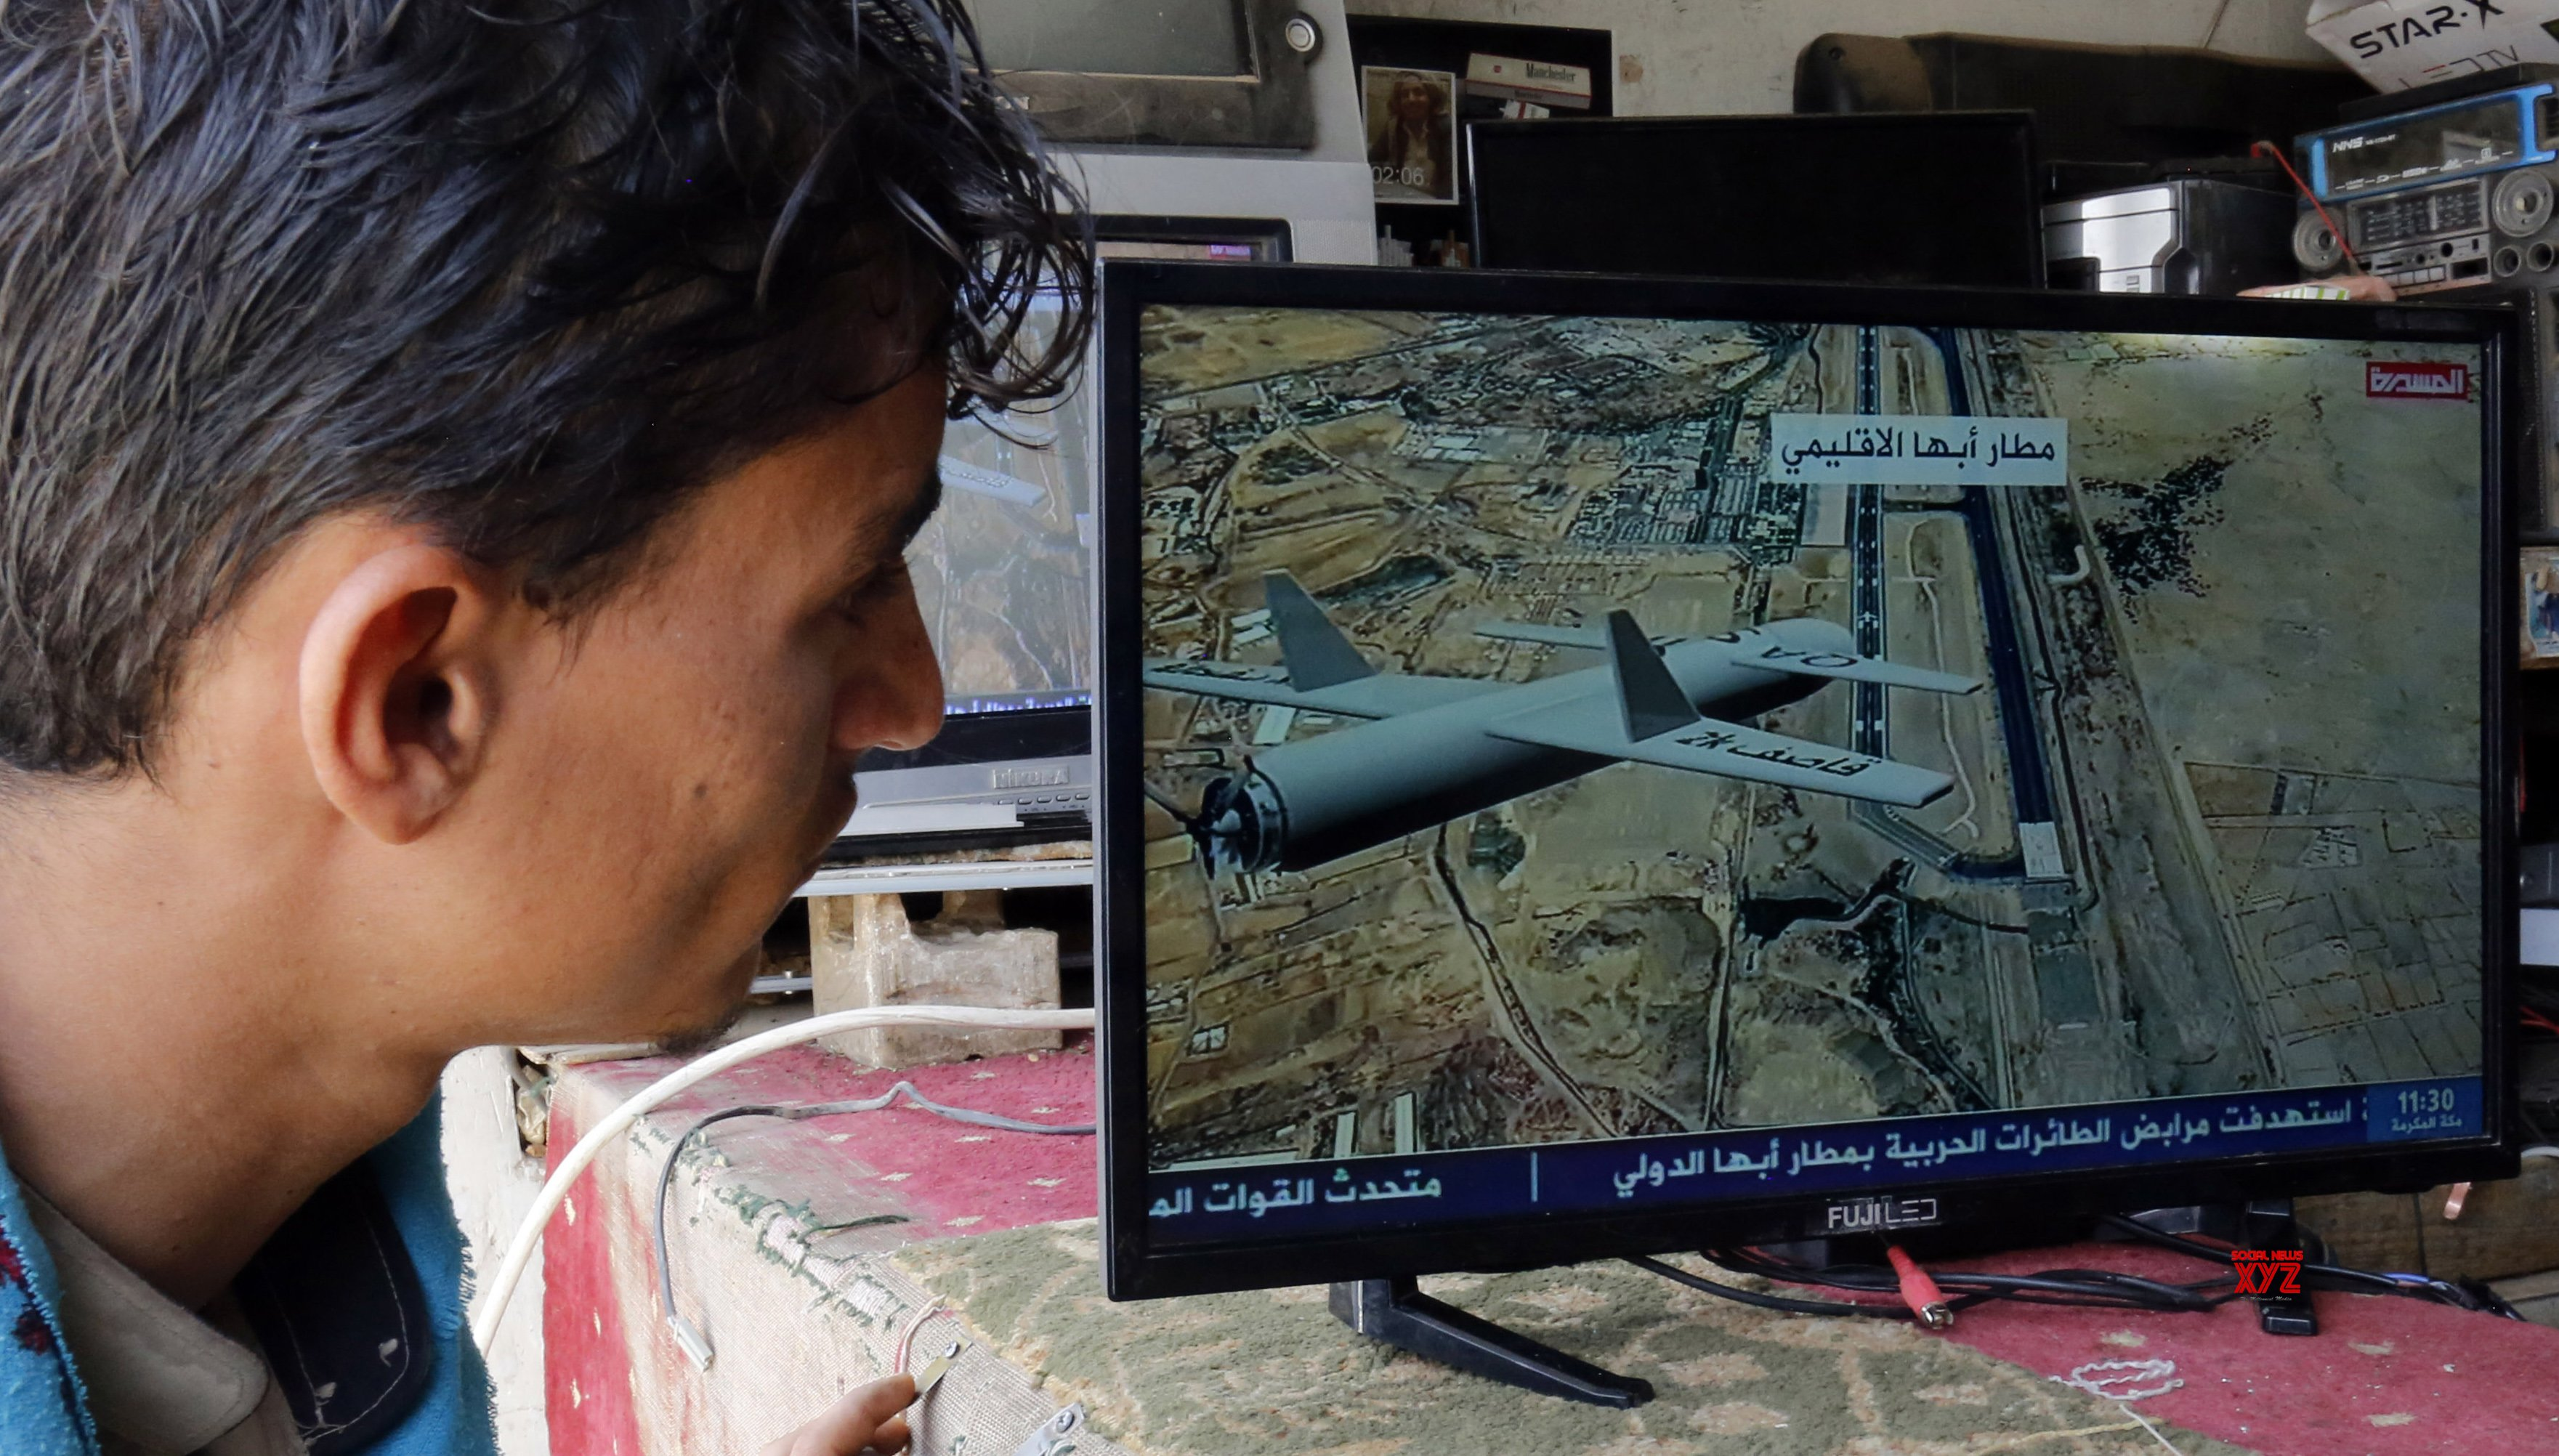 YEMEN - SANAA - HOUTHI REBELS - AIRPORT - ATTACK #Gallery - Social